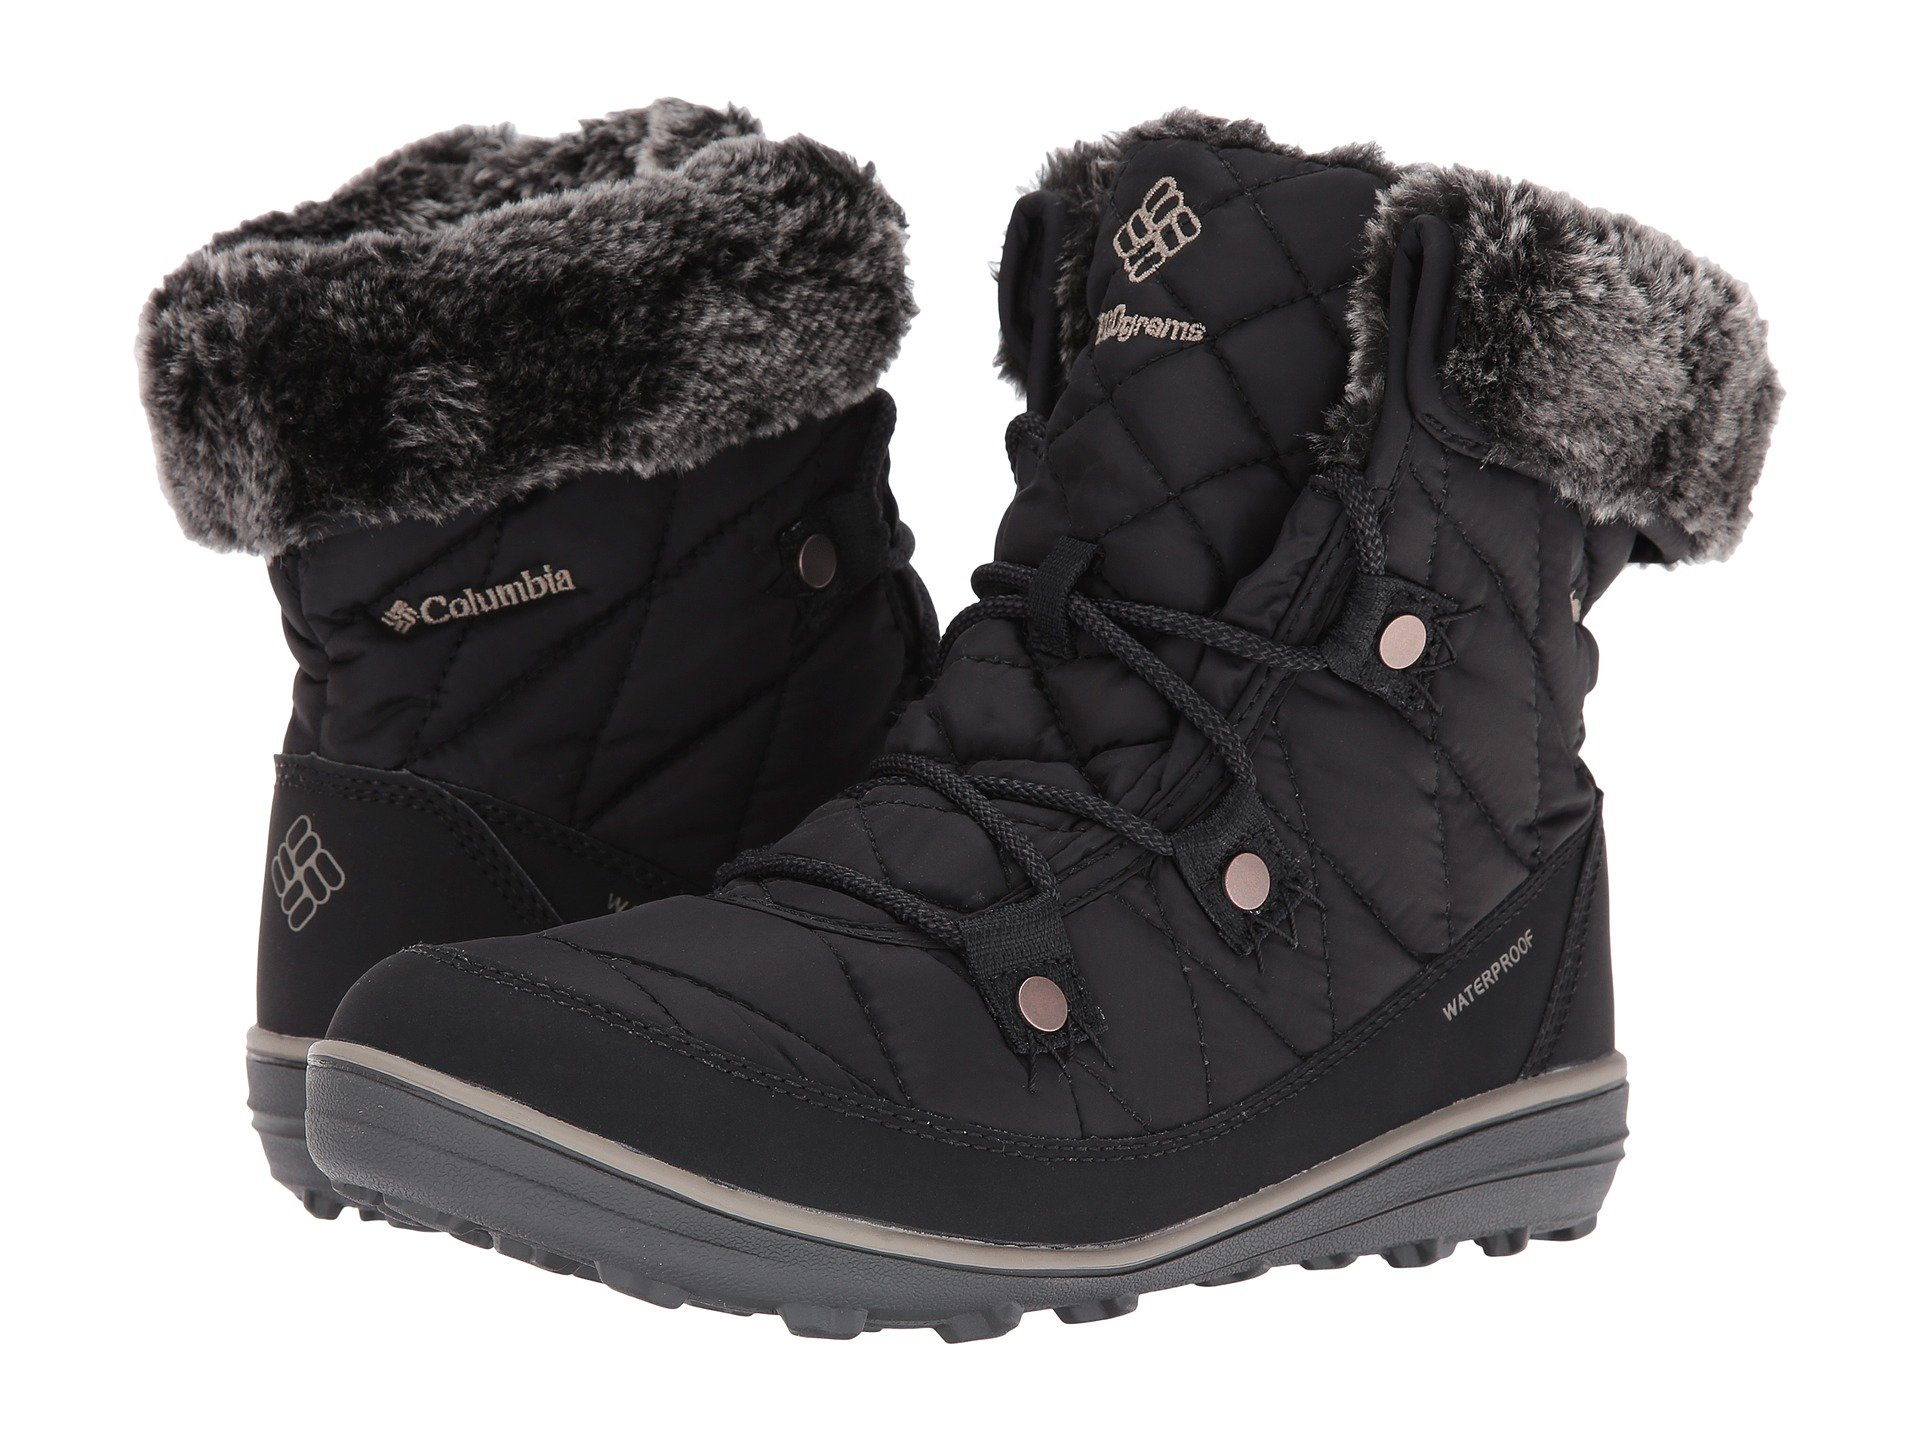 af29baa3674 Women s Winter and Snow Boots + FREE SHIPPING